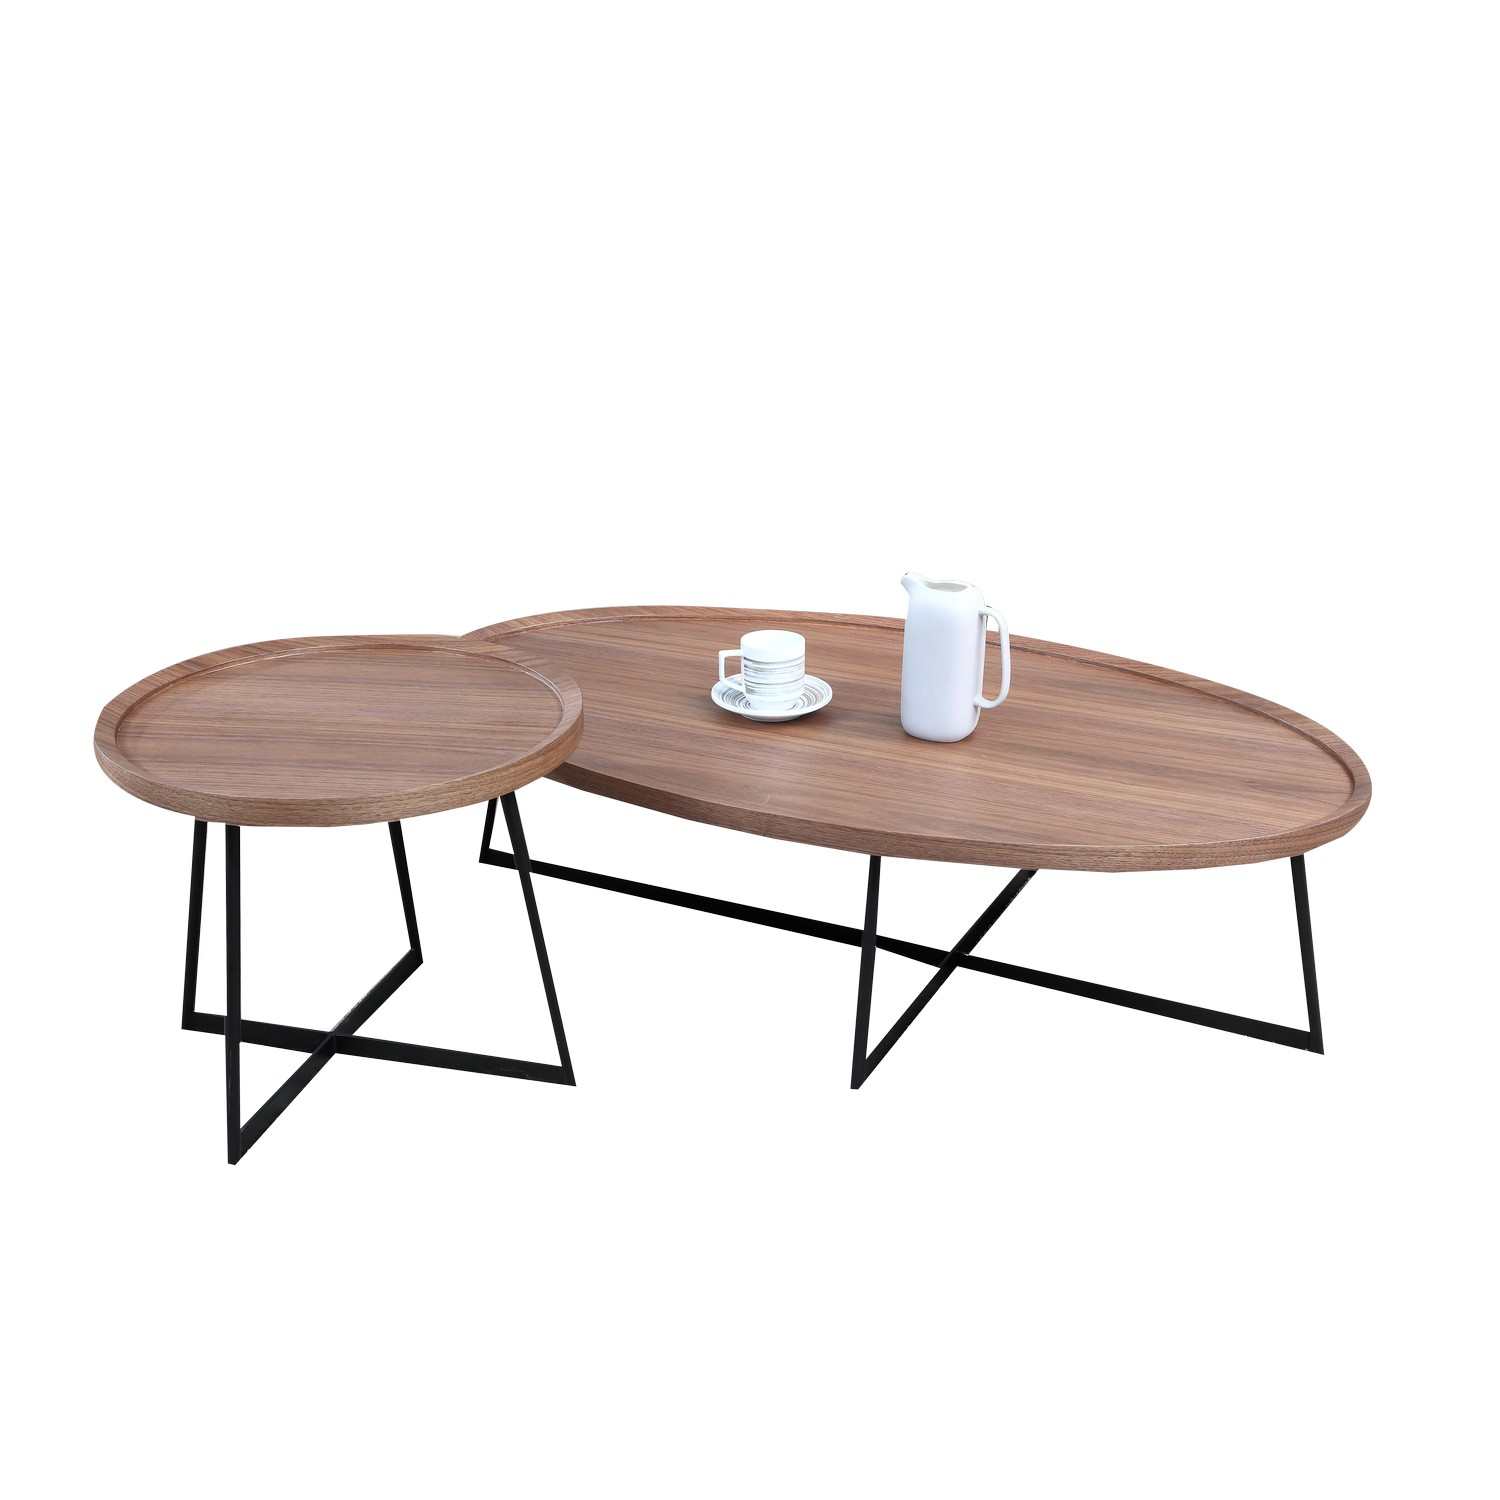 Brc6588a Solid Oval Shape Wooden Coffee Table Absolute Bedding